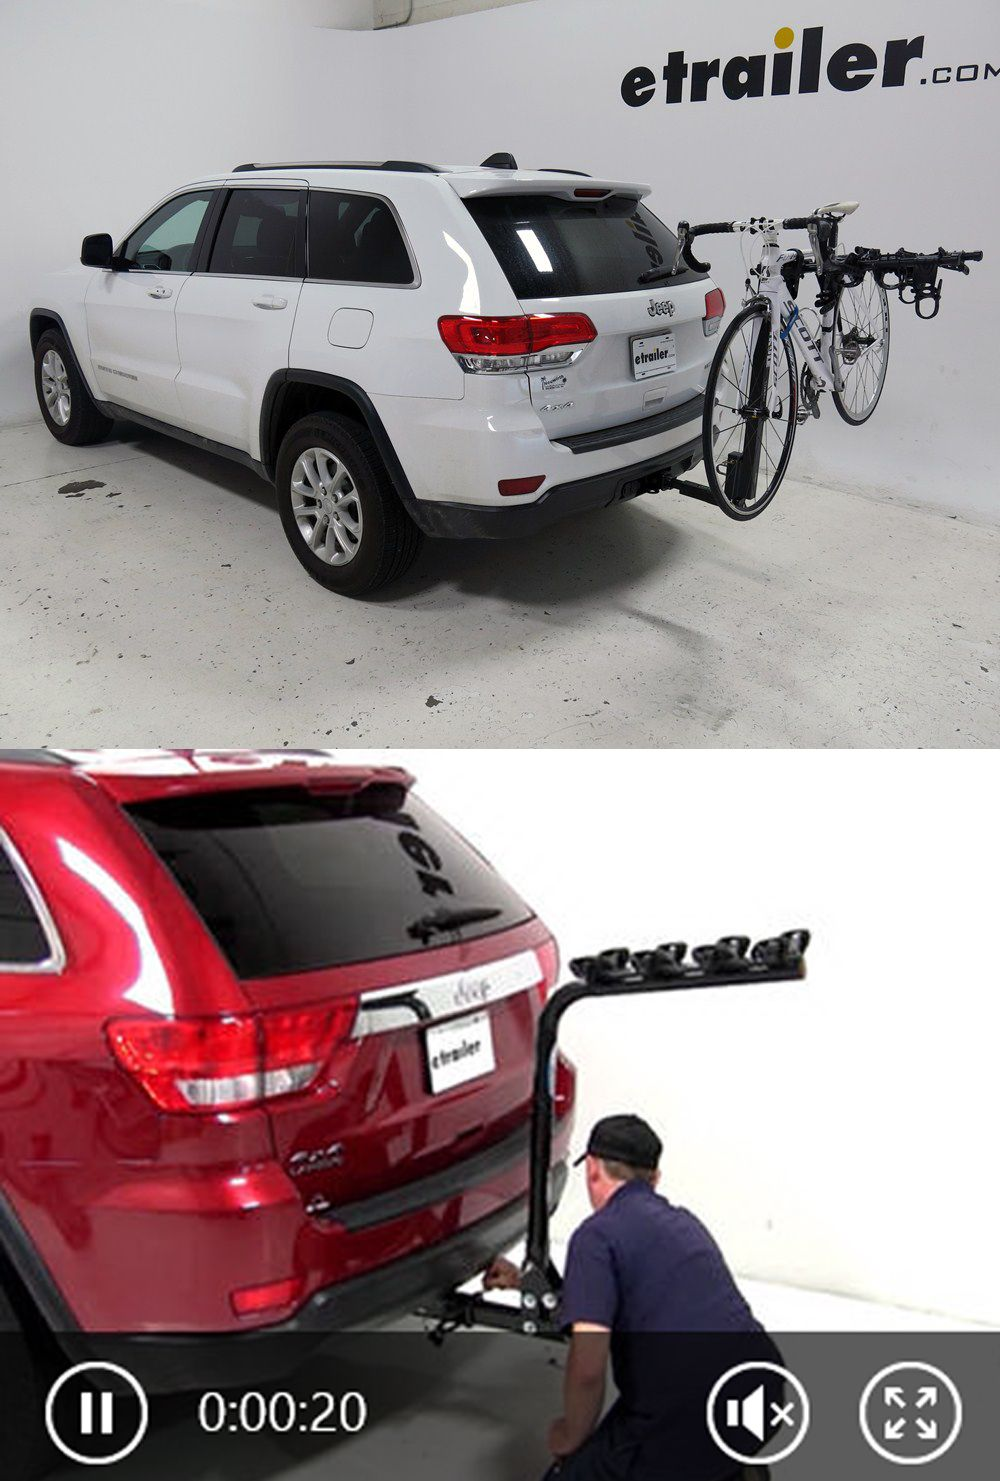 The Top 20 Most Popular Jeep Grand Cherokee Bike Racks Based On